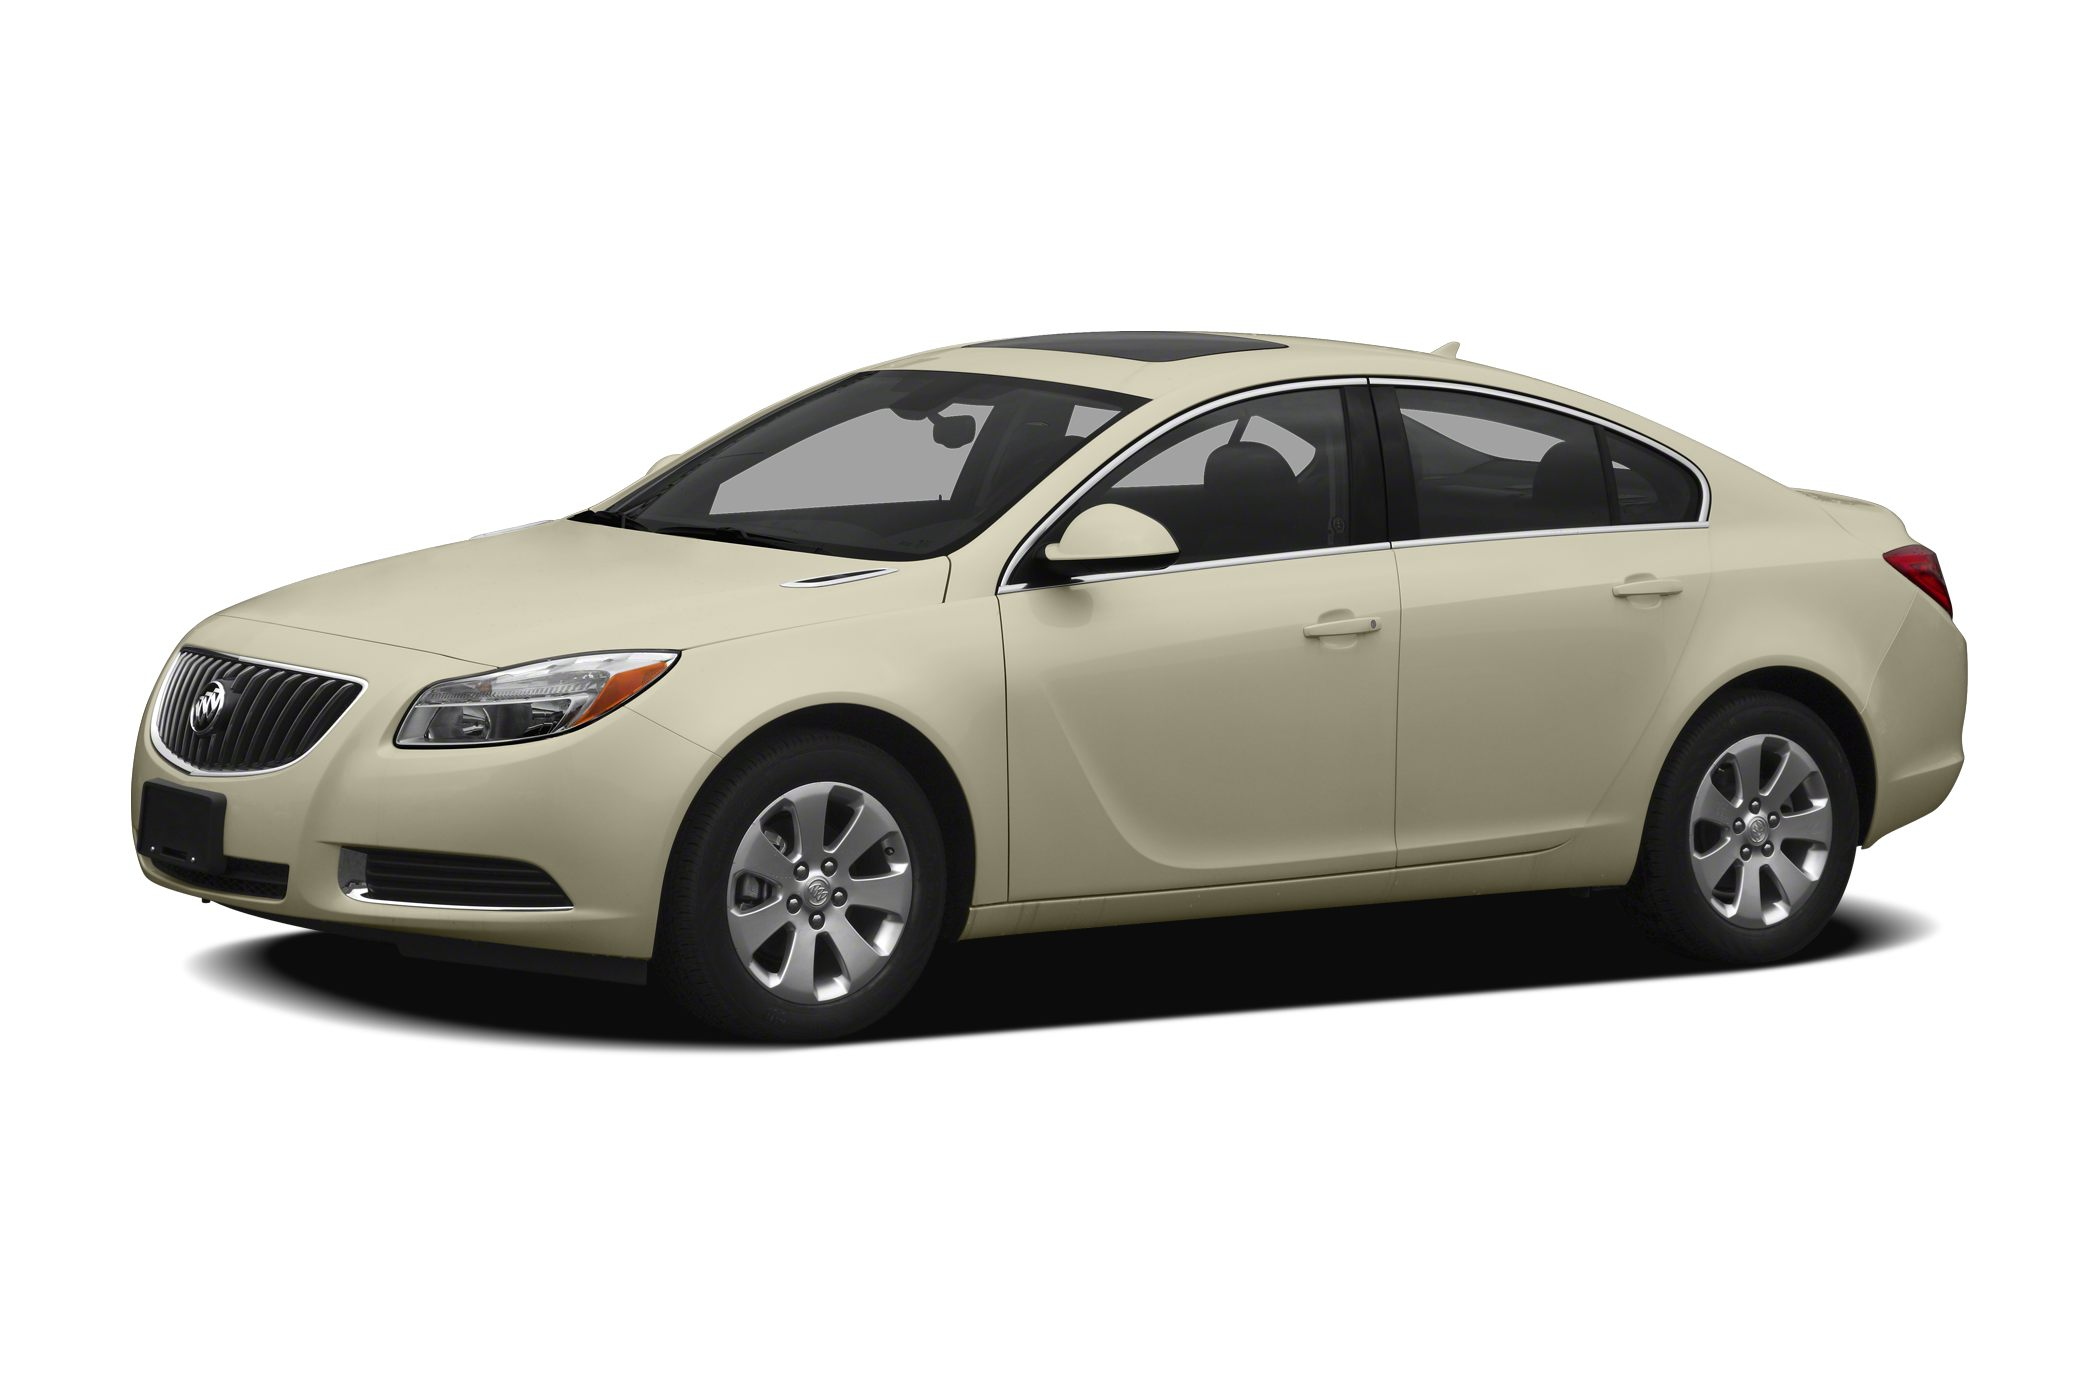 2012 Buick Regal Turbo - Premium 3 Sedan for sale in Indianapolis for $19,625 with 45,891 miles.